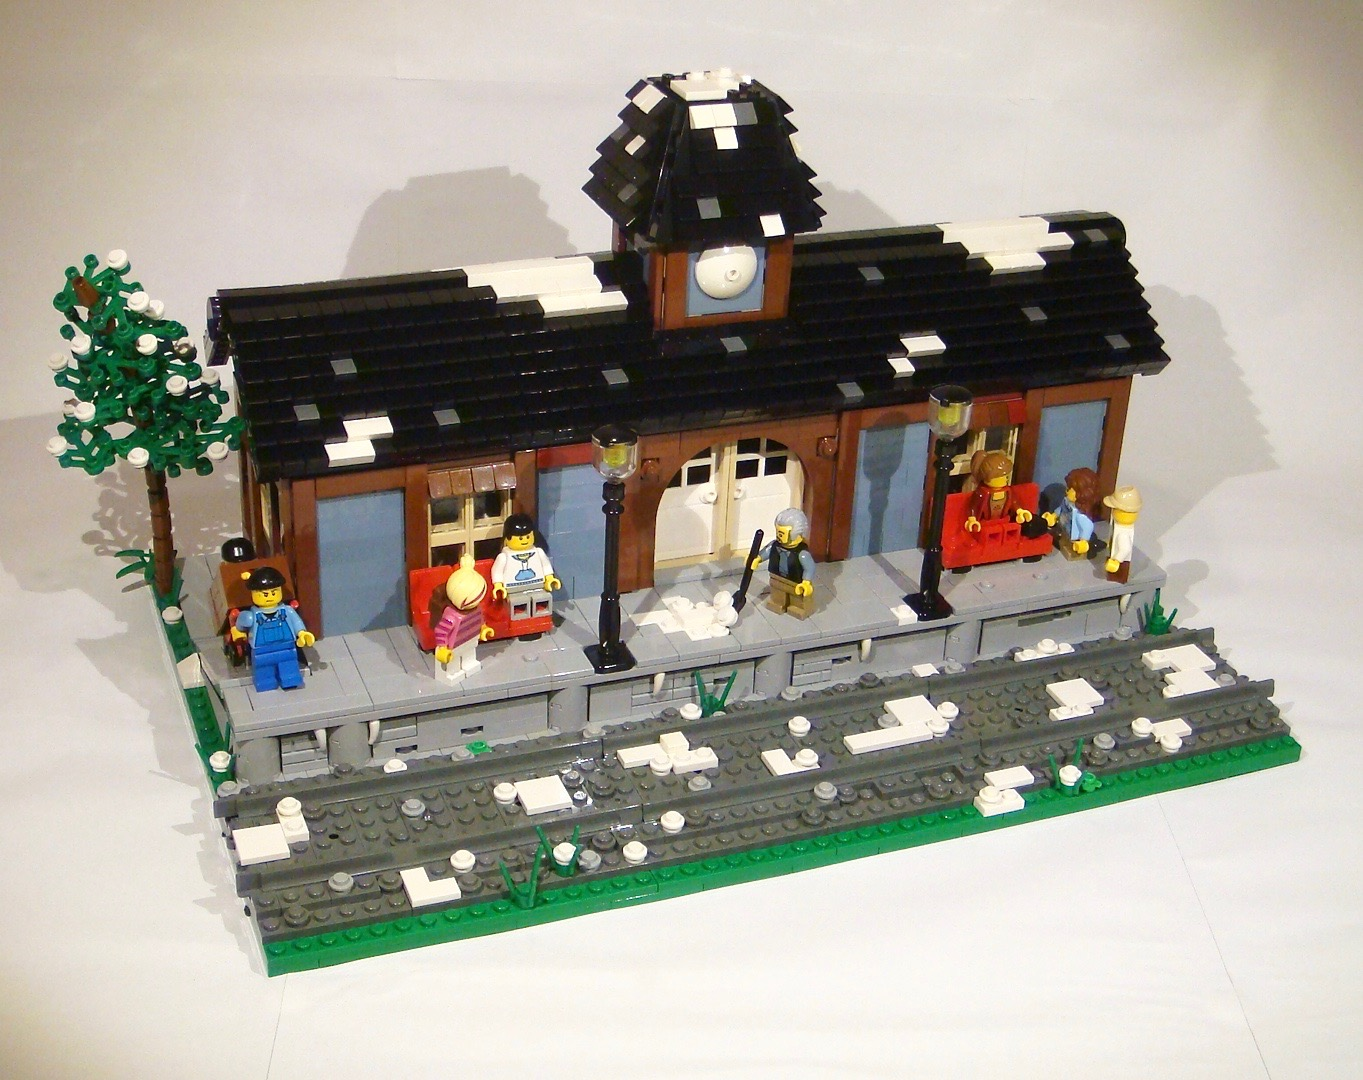 Concurs Winter Brickland – Creatia 9: American Vintage Train Station